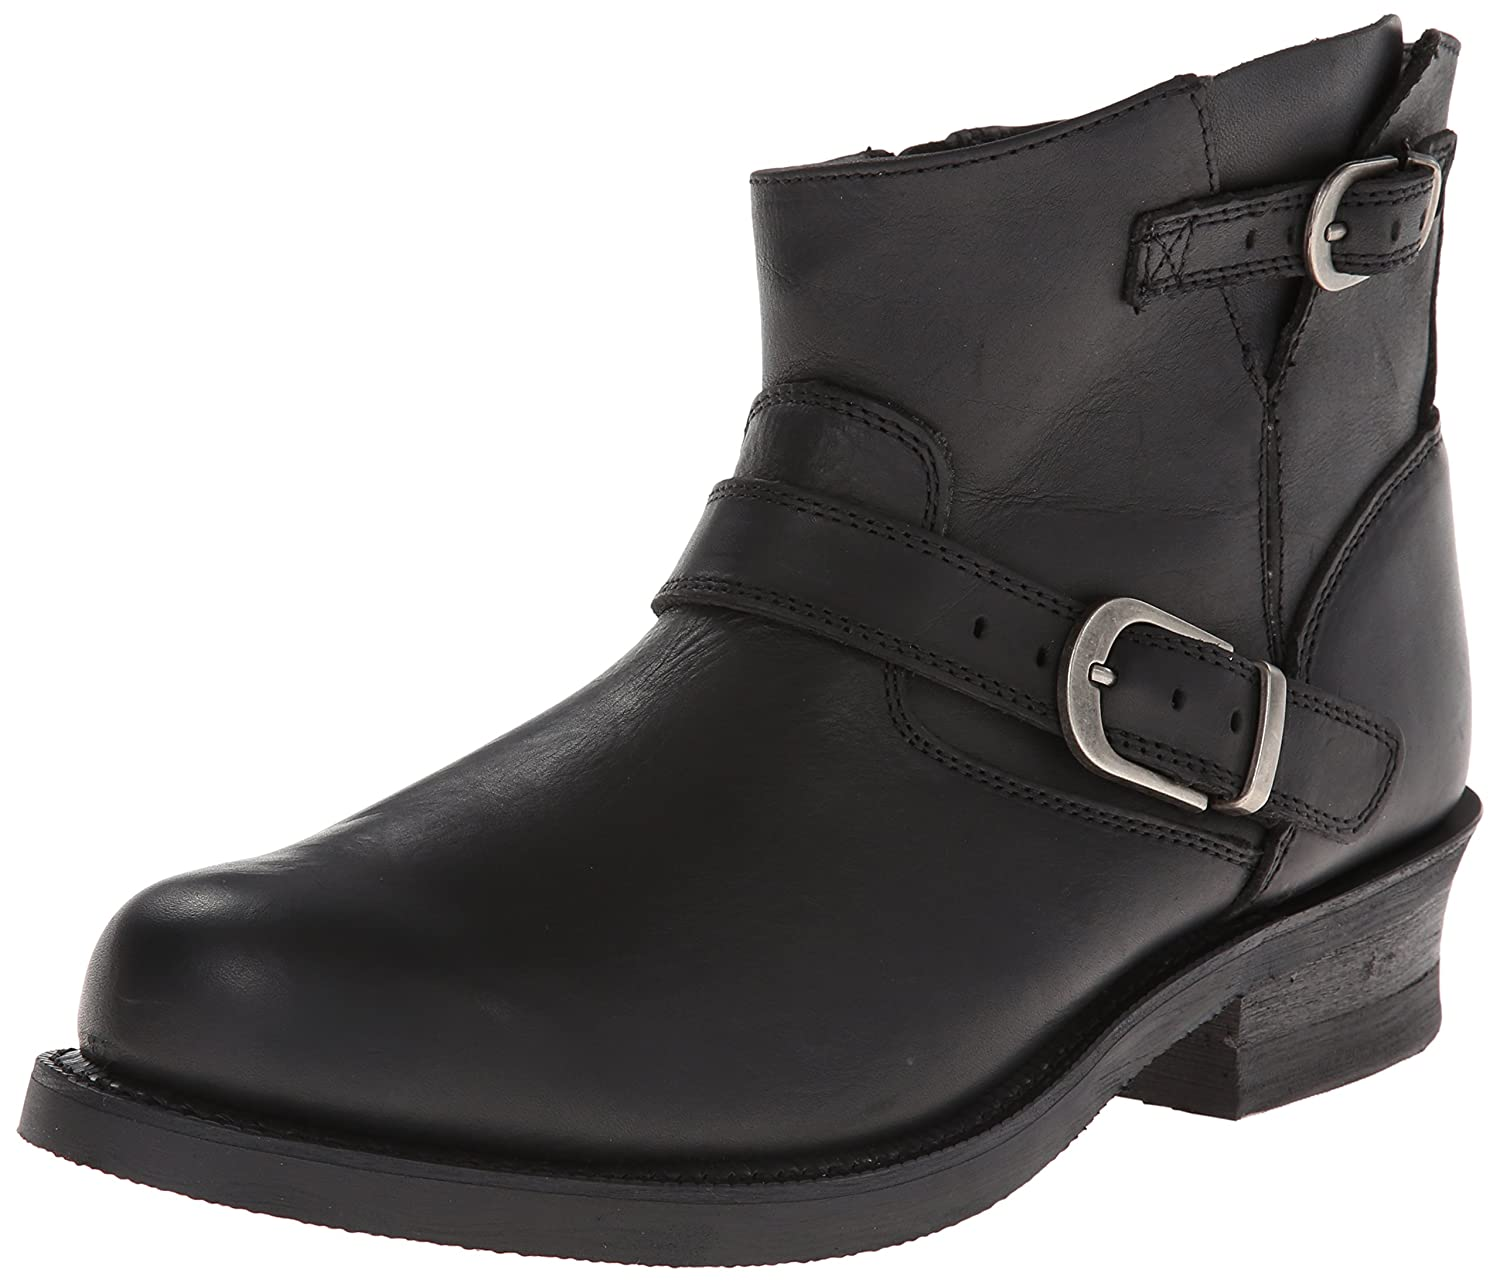 Durango Men's 6 Soho Engineer Boot Black 11.5 M DCDB023